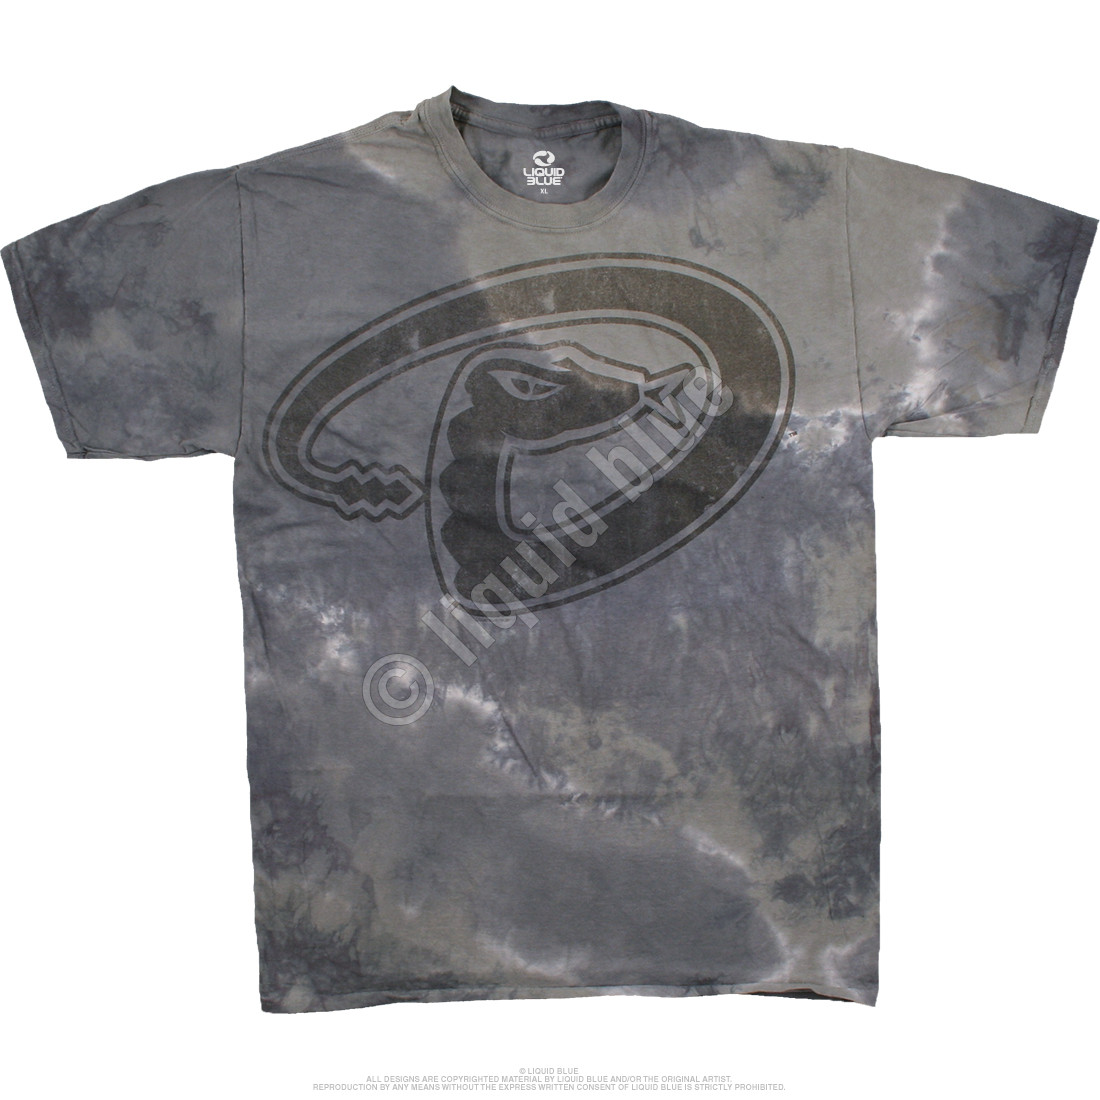 Arizona Diamondbacks Tonal Tie-Dye T-Shirt - Clearance 30% OFF